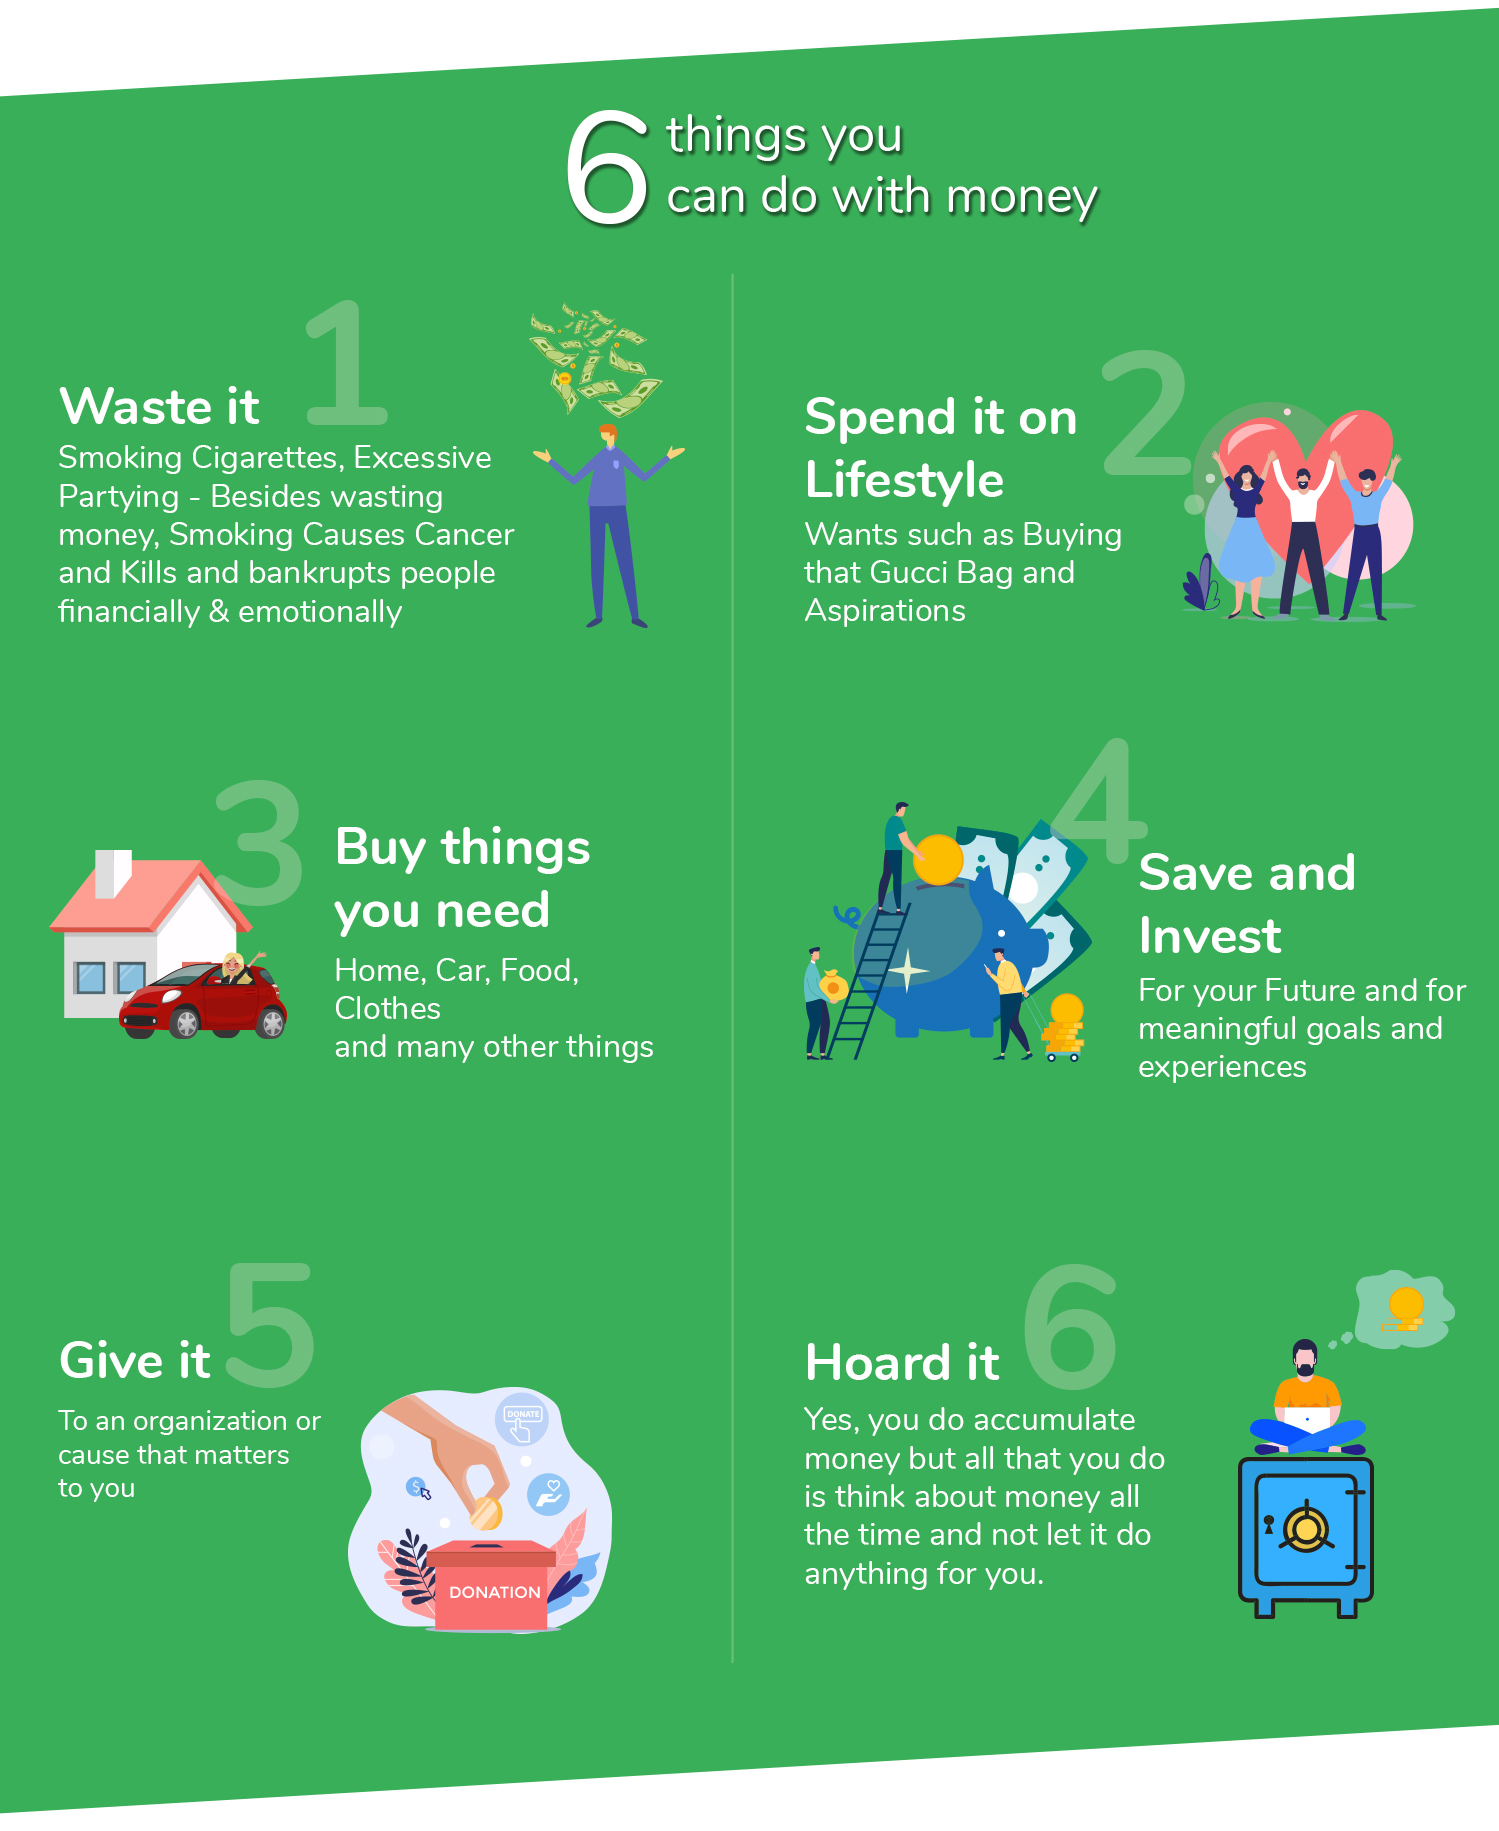 6 things you can do with money